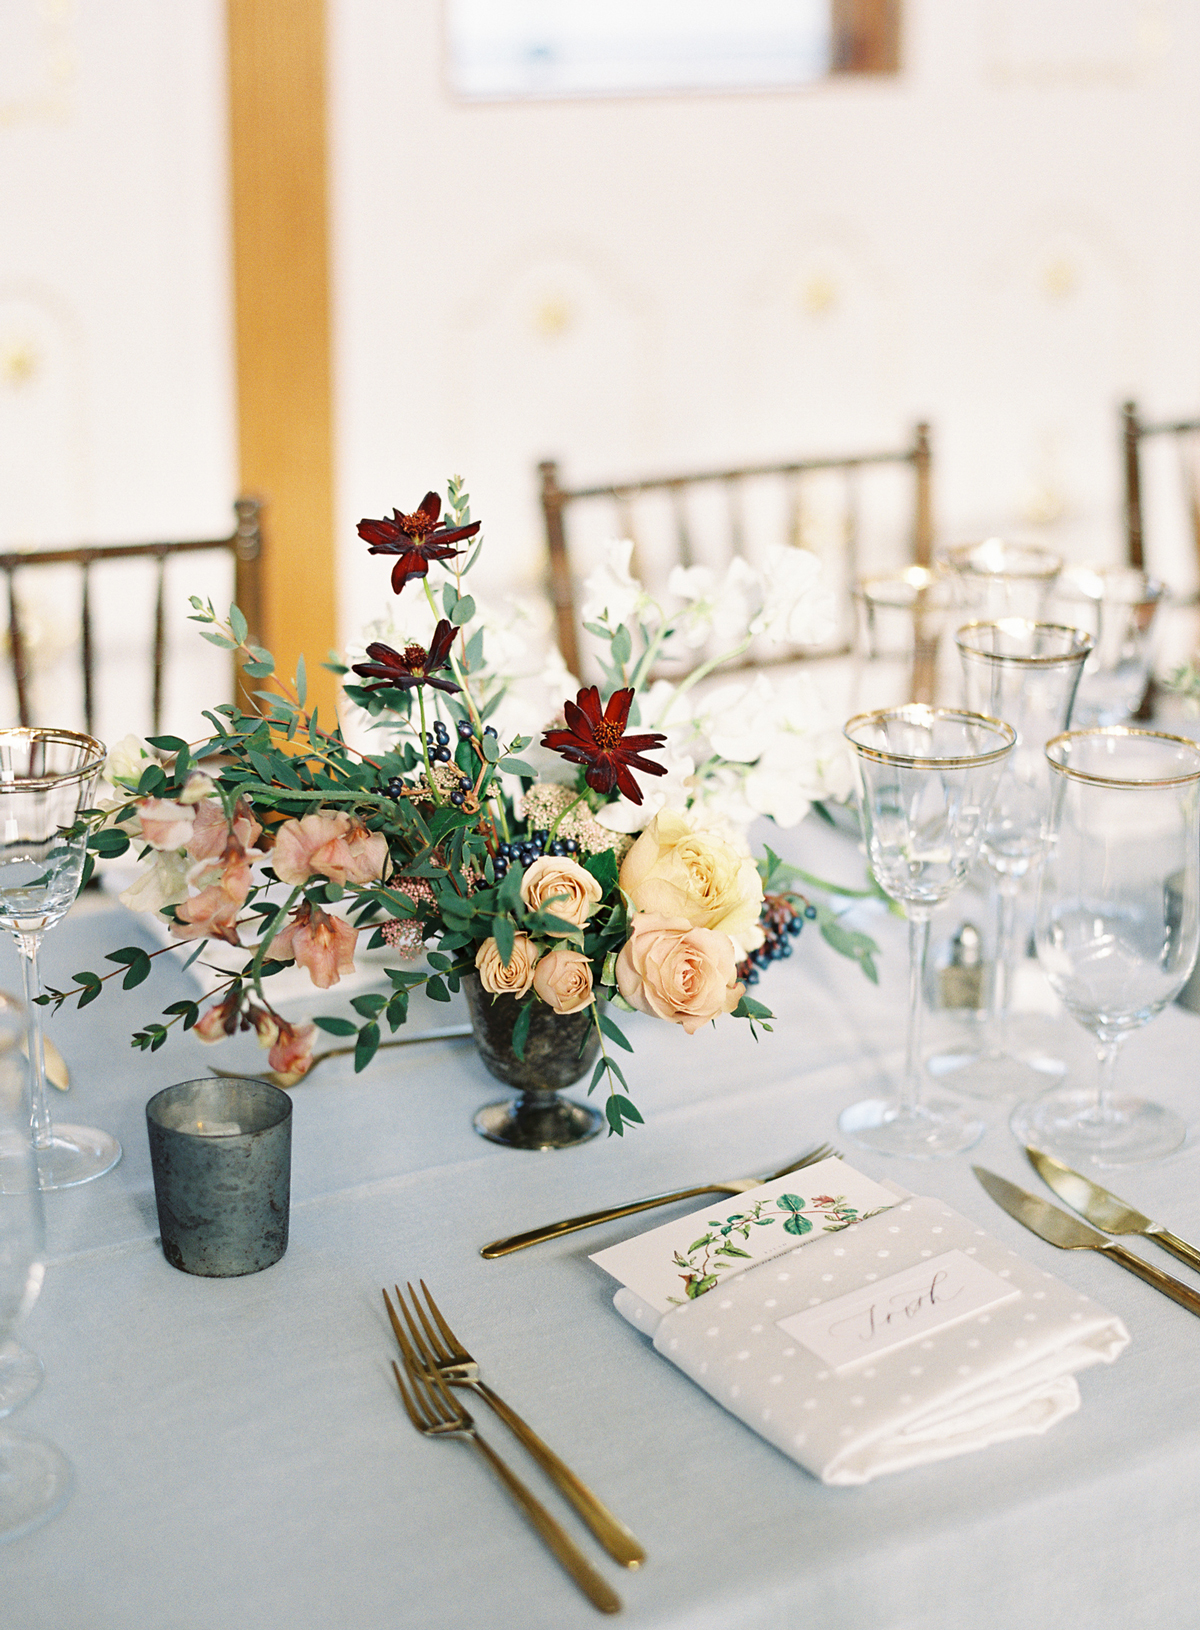 floral centerpieces, blue-grey linen, and gold accented glass tableware